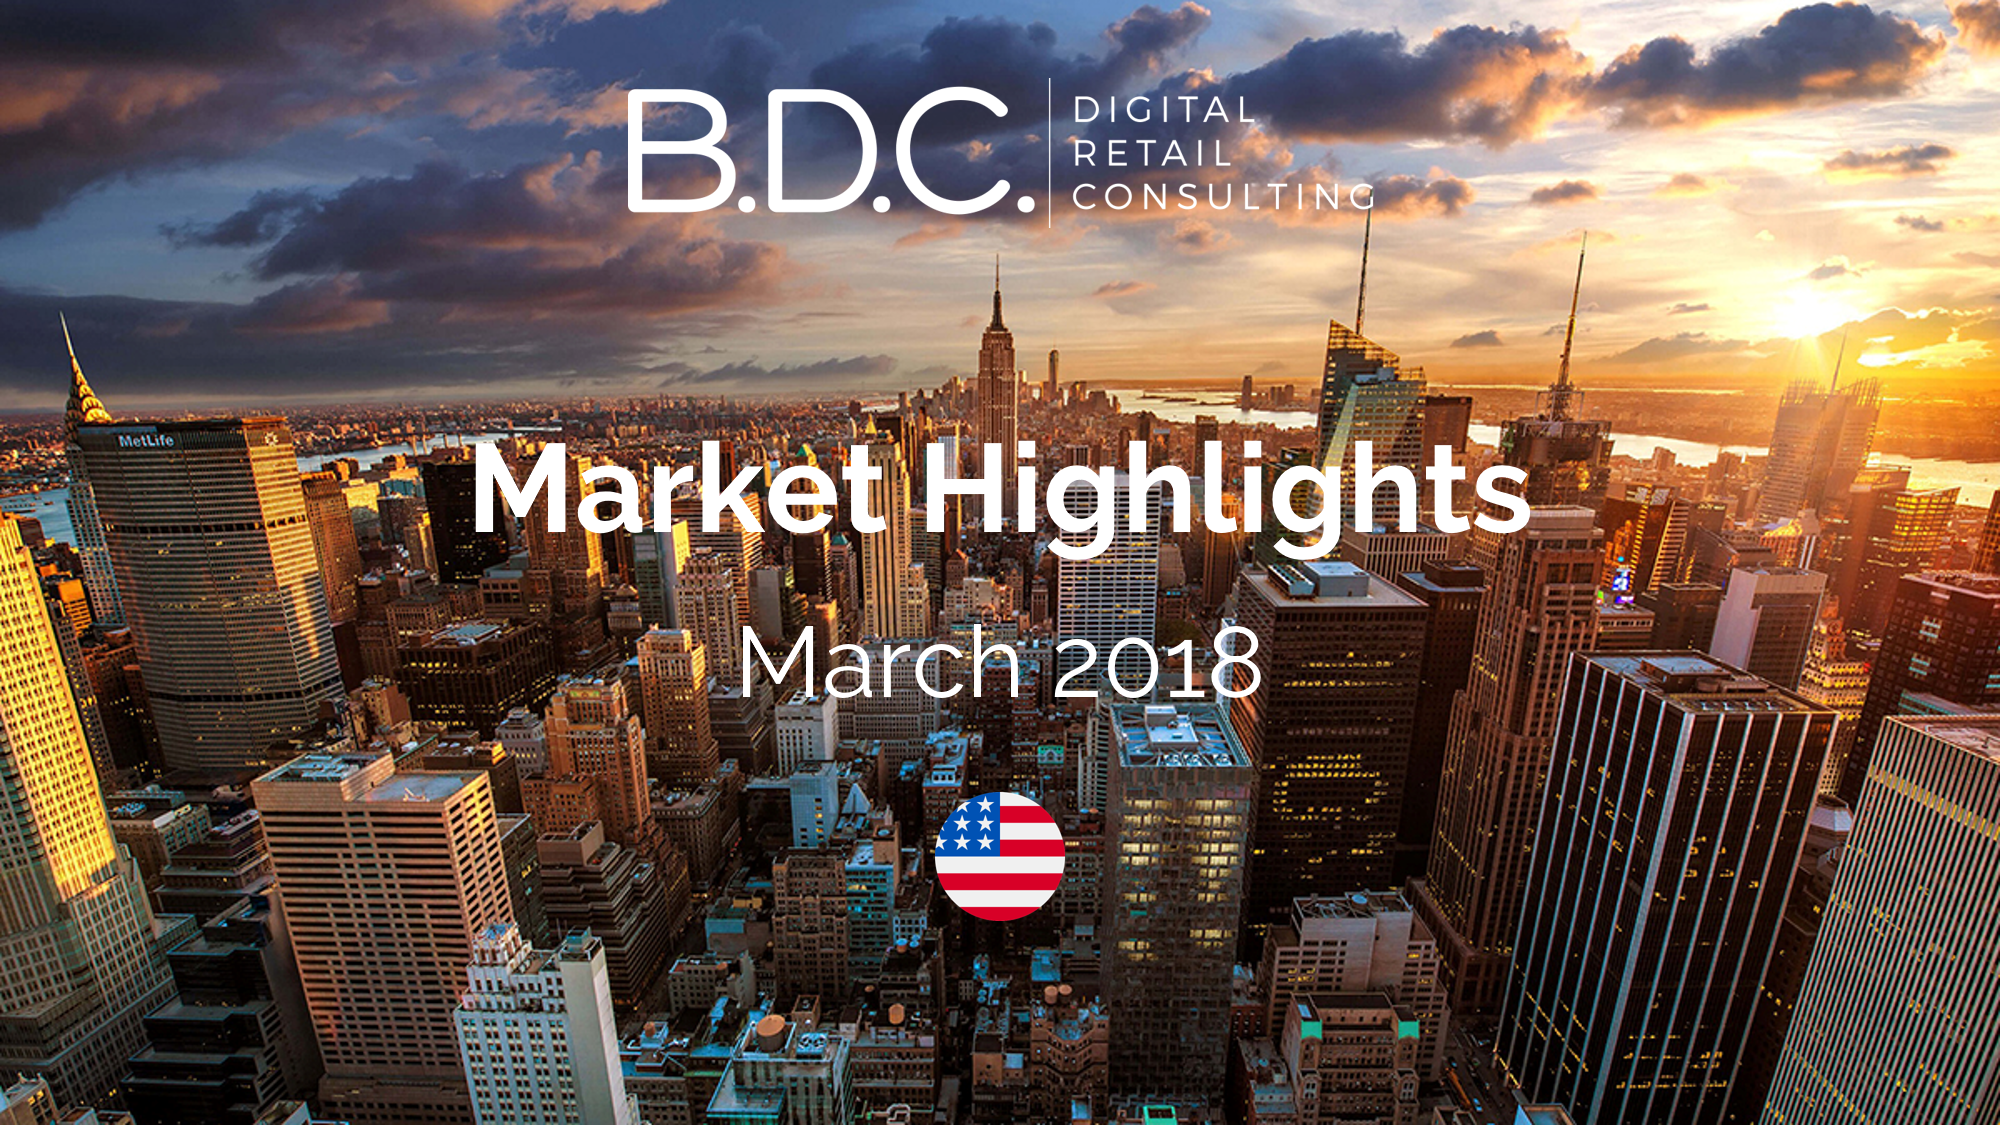 market highlights march bdc us nyc retail digital